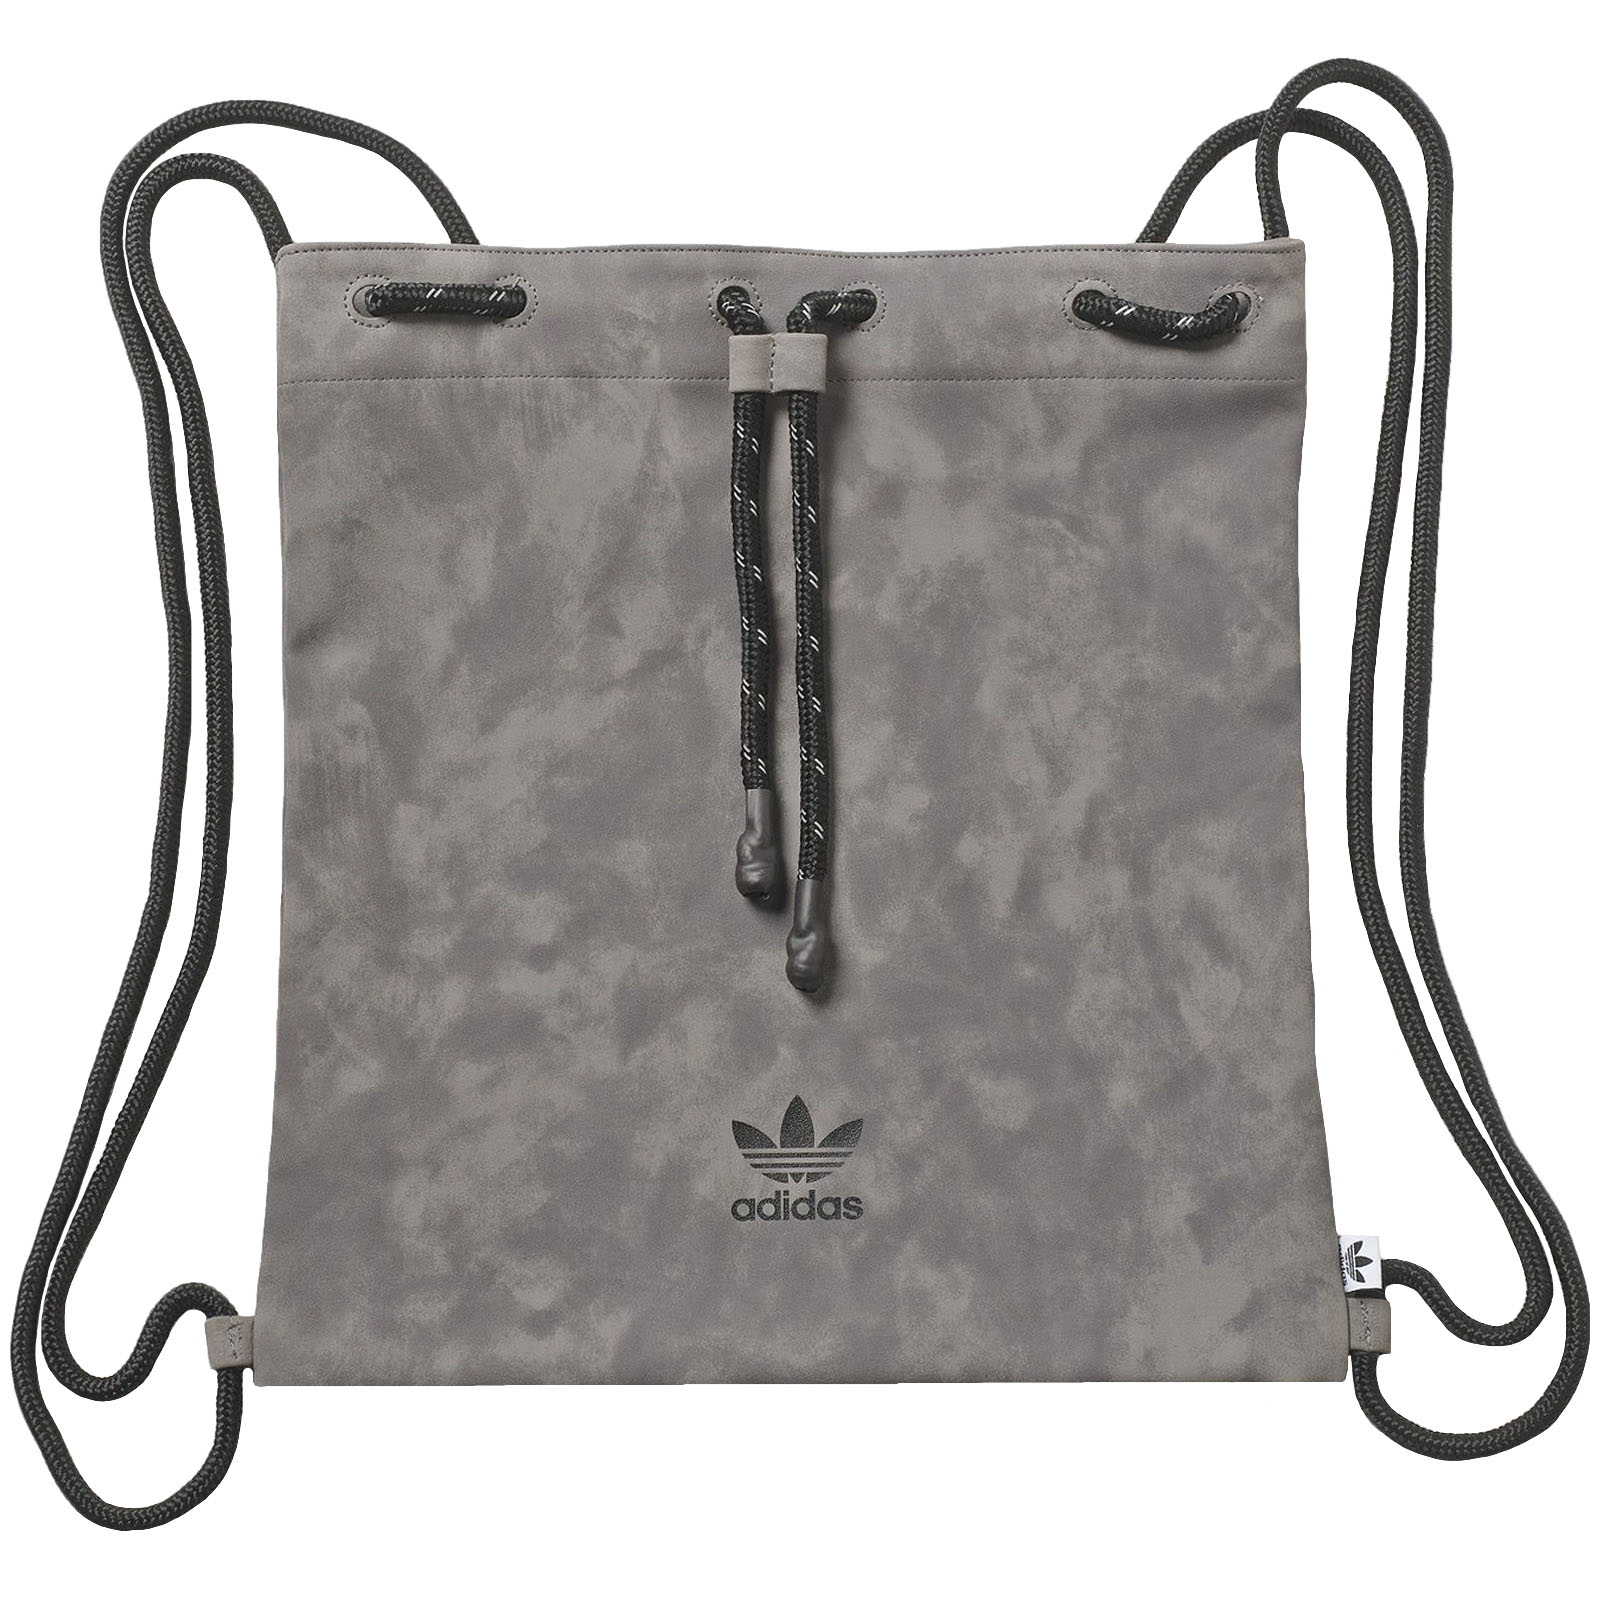 0e5da87b3283 Details about adidas Originals Womens Suede Trefoil Drawstring Gym Sack Bag  - Grey